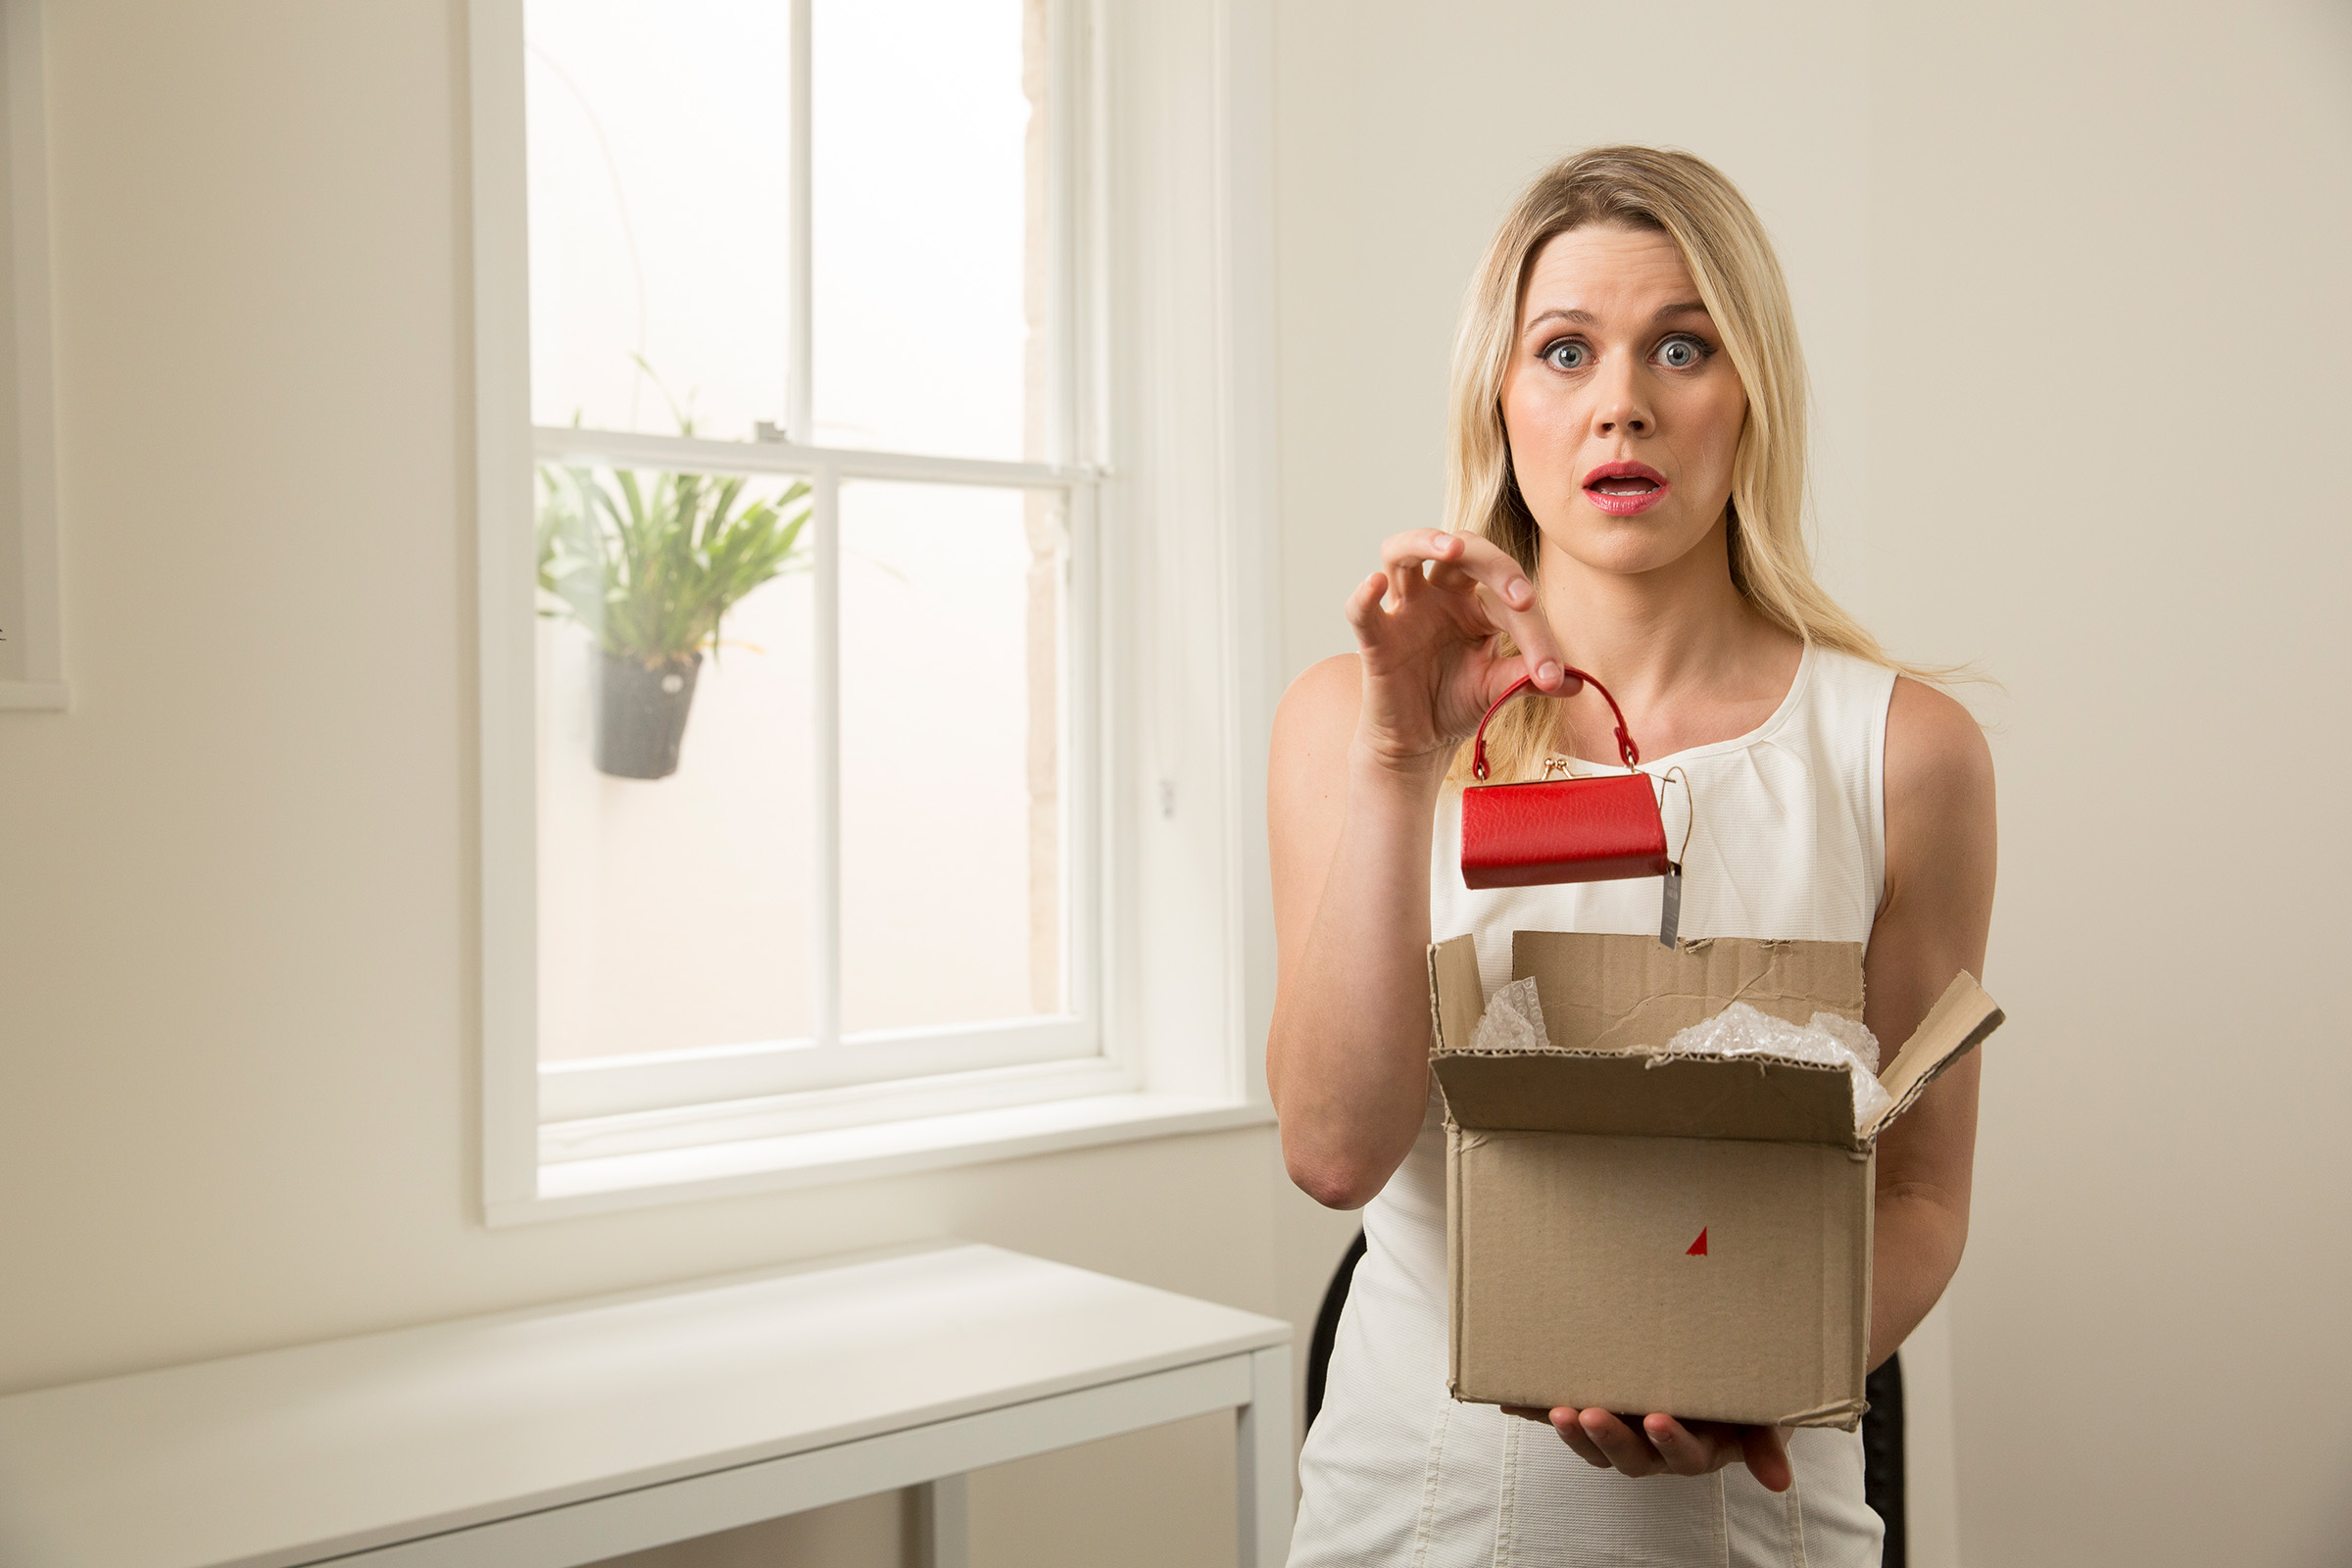 Advertising photography for PayPal of surprised woman receiving too small handbag she ordered online